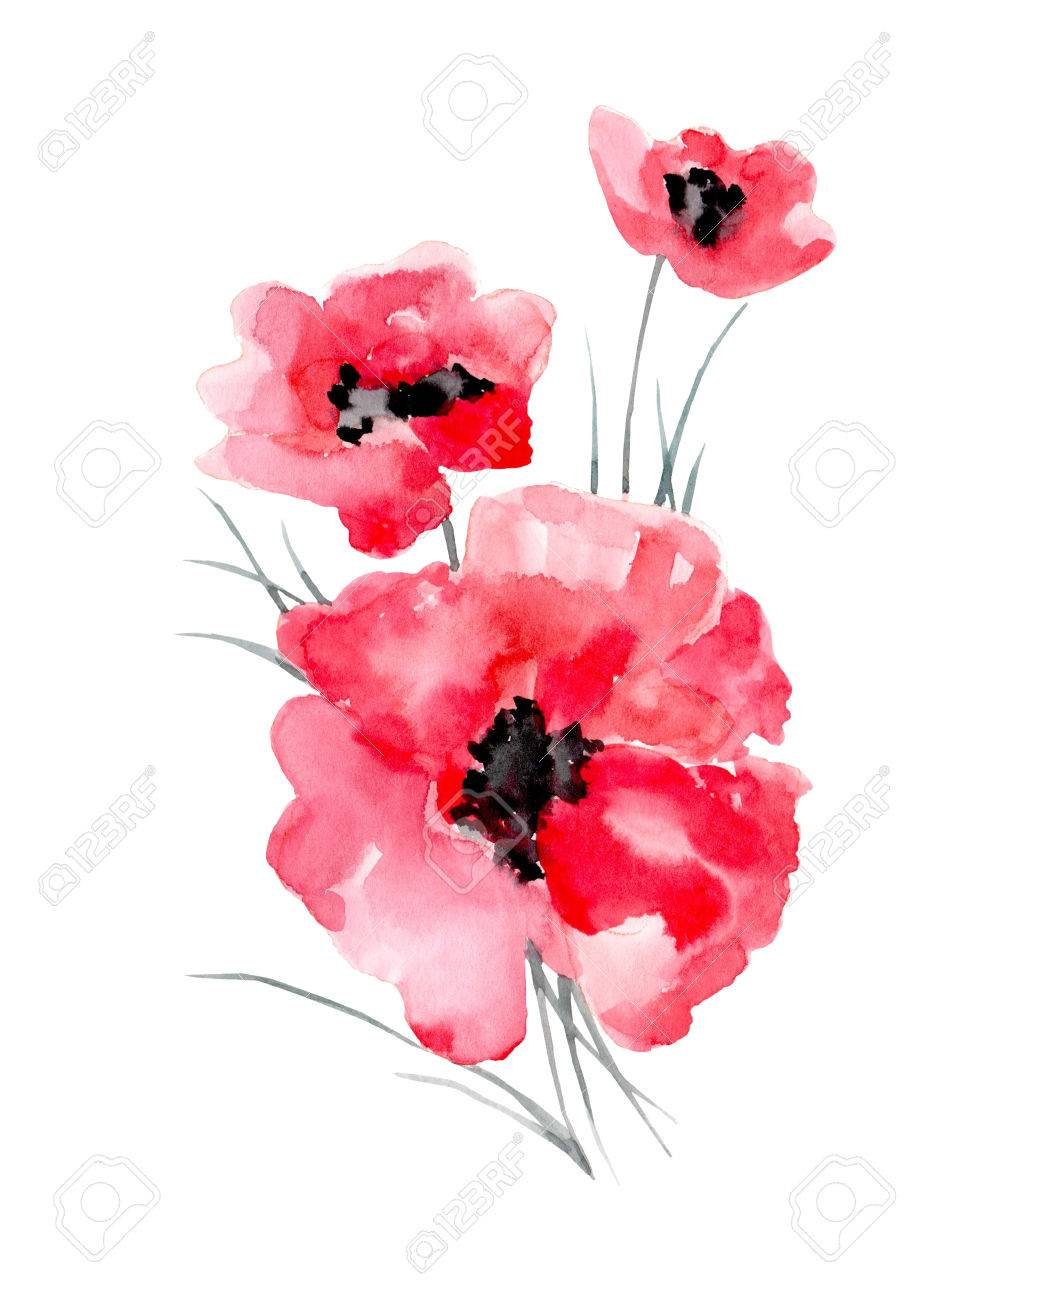 Watercolor illustration of a poppy on a white background. Background for your design and decor. - 63721262